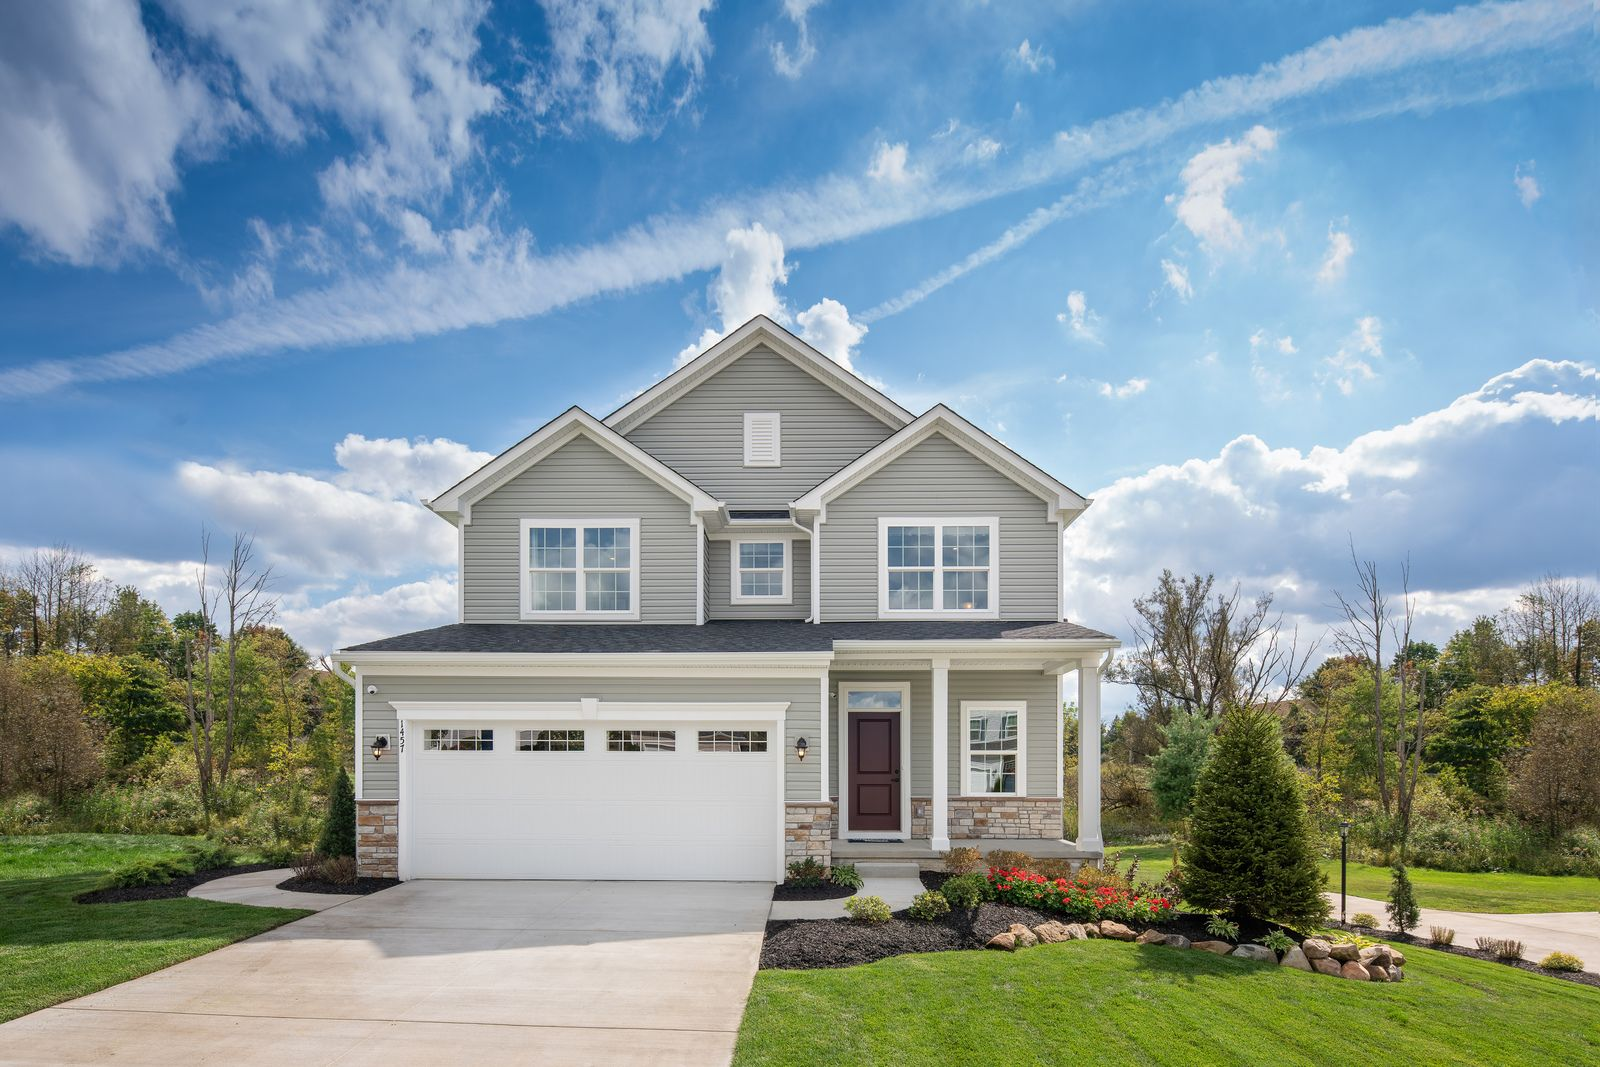 Spacious Homes near Mt. Pleasant and Daniel Island - Just Off I-526:Schedule a Visitto tour this intimate community where you can own a spacious home with a large yard off Clements Ferry Road